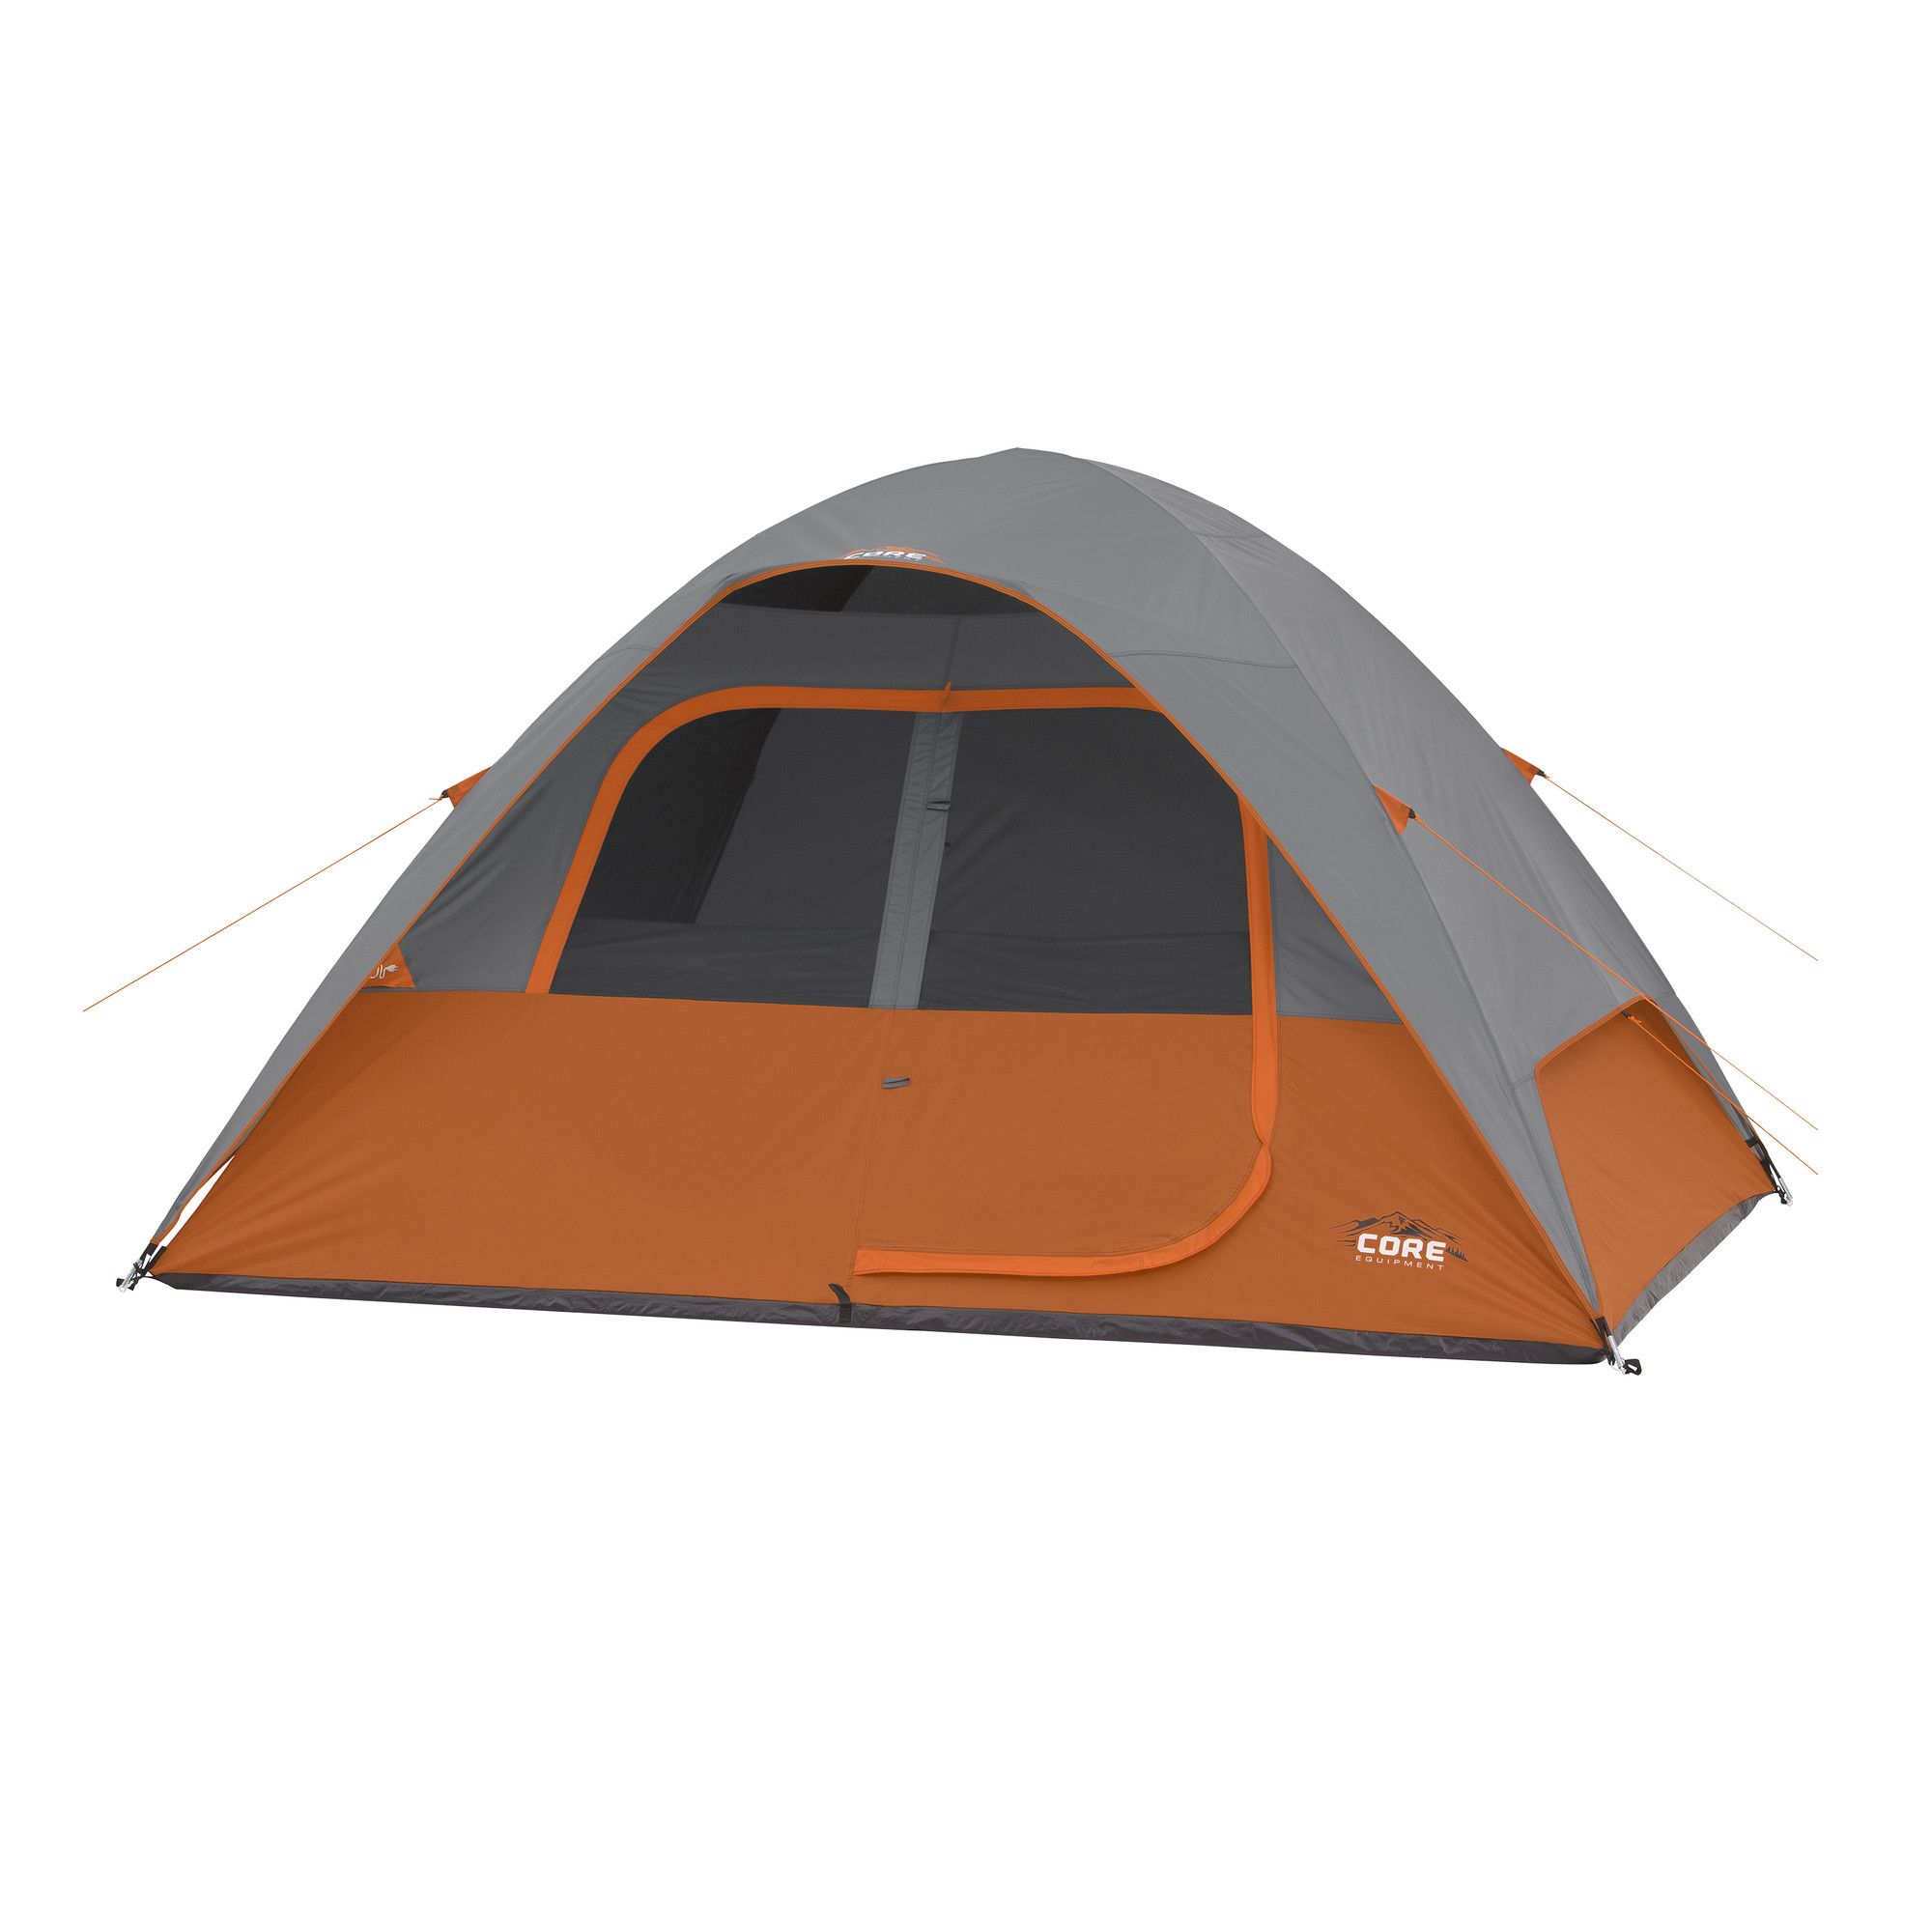 6 Person Dome Tent Family Tent Camping Dome Tent Tent